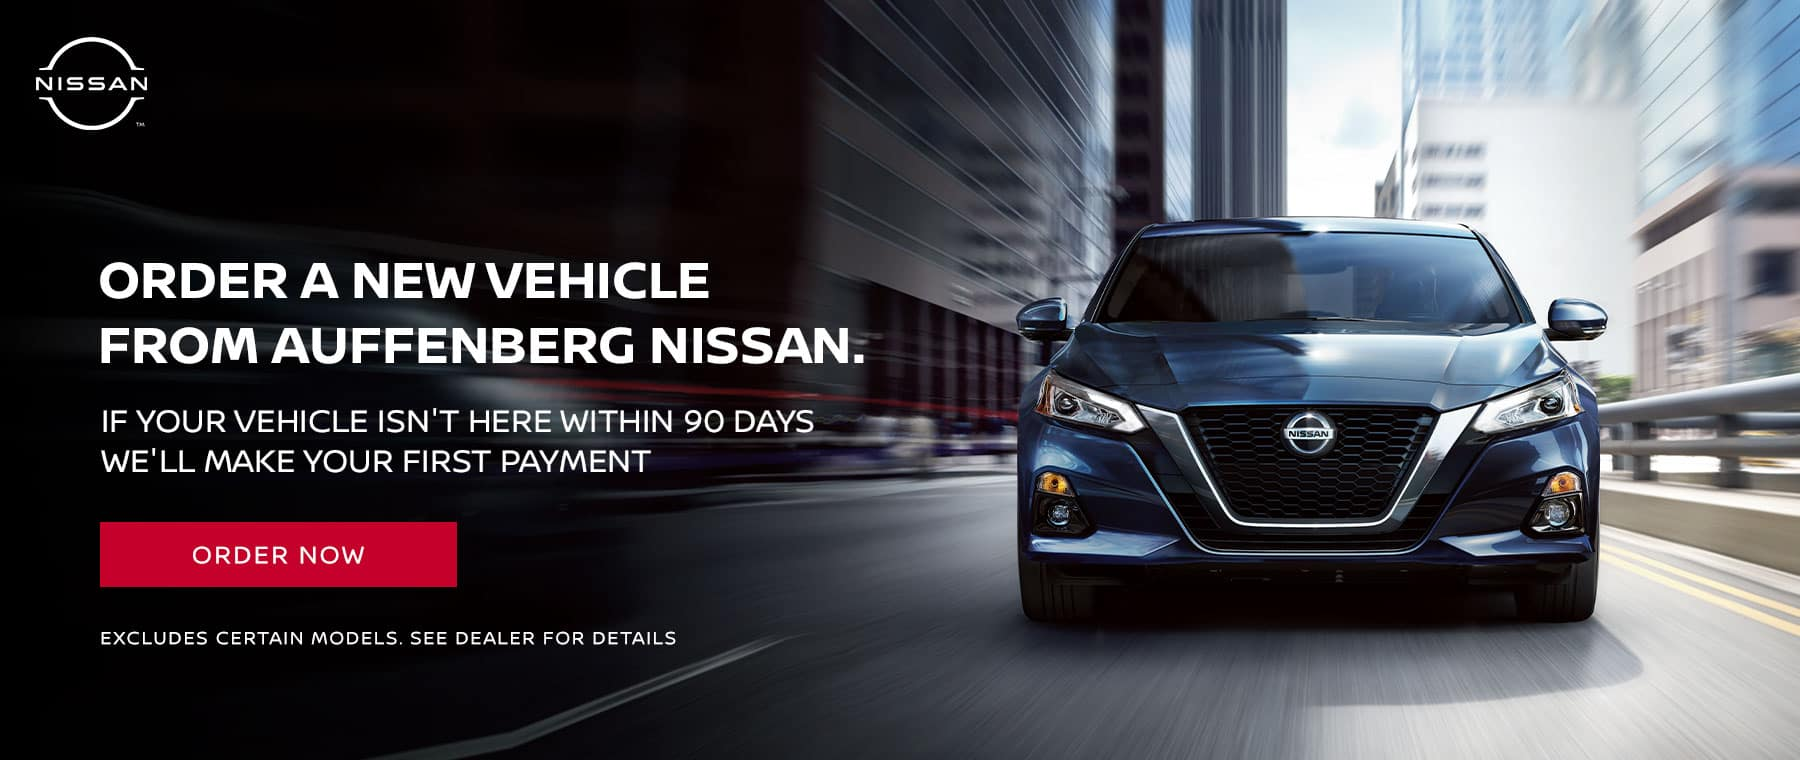 ORDER A NEW vehicle FROM AUFFENBERG NISSAN . IF YOUR VEHICLE ISN'T HERE WITHIN 90 DAYS WE'LL MAKE YOUR FIRST PAYMENT Disclaimer:EXCLUDES certain models. See dealer for details